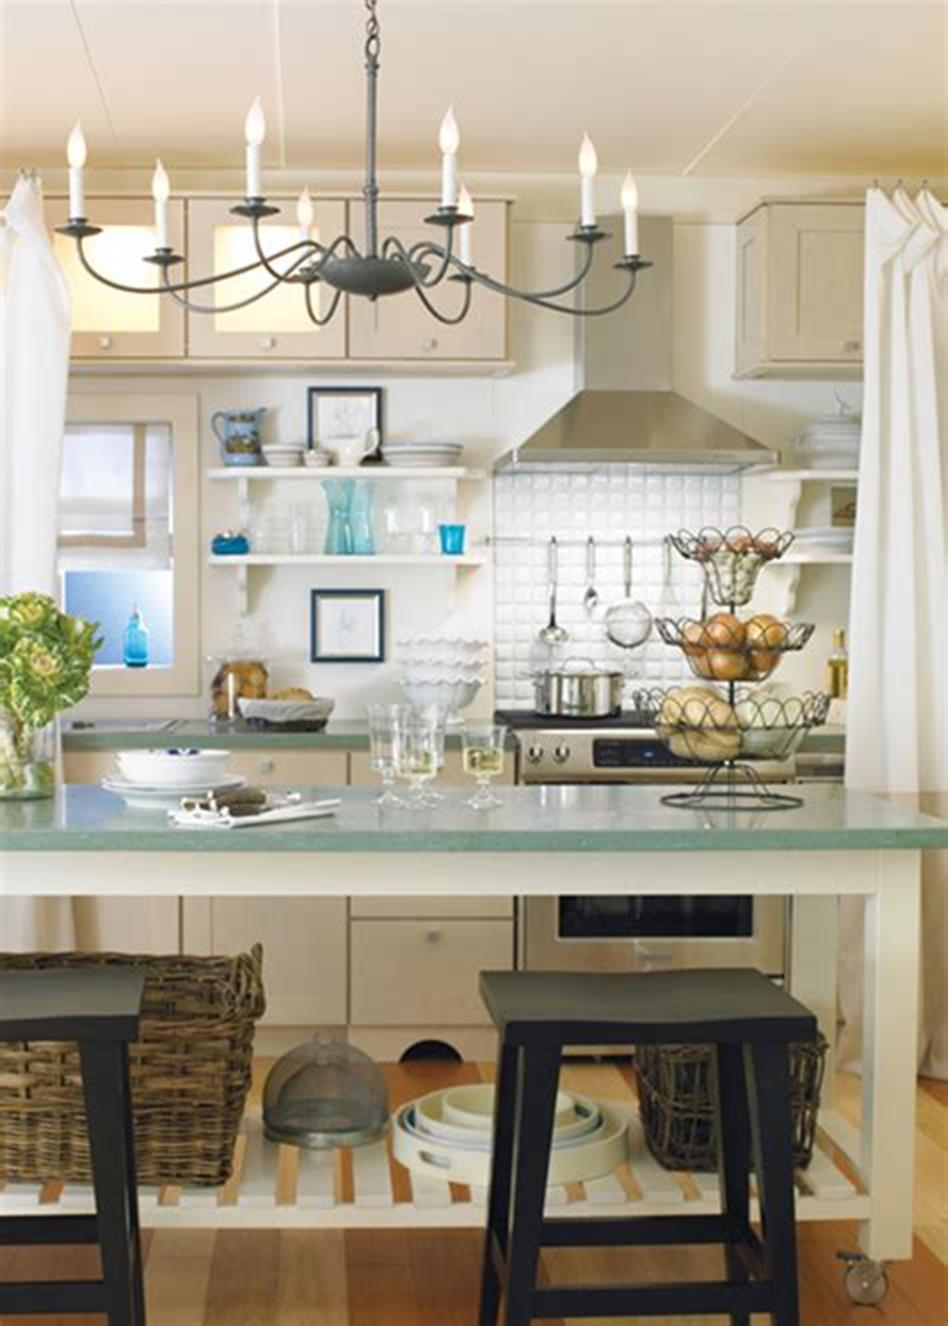 43 Amazing Kitchen Remodeling Ideas for Small Kitchens 2019 66